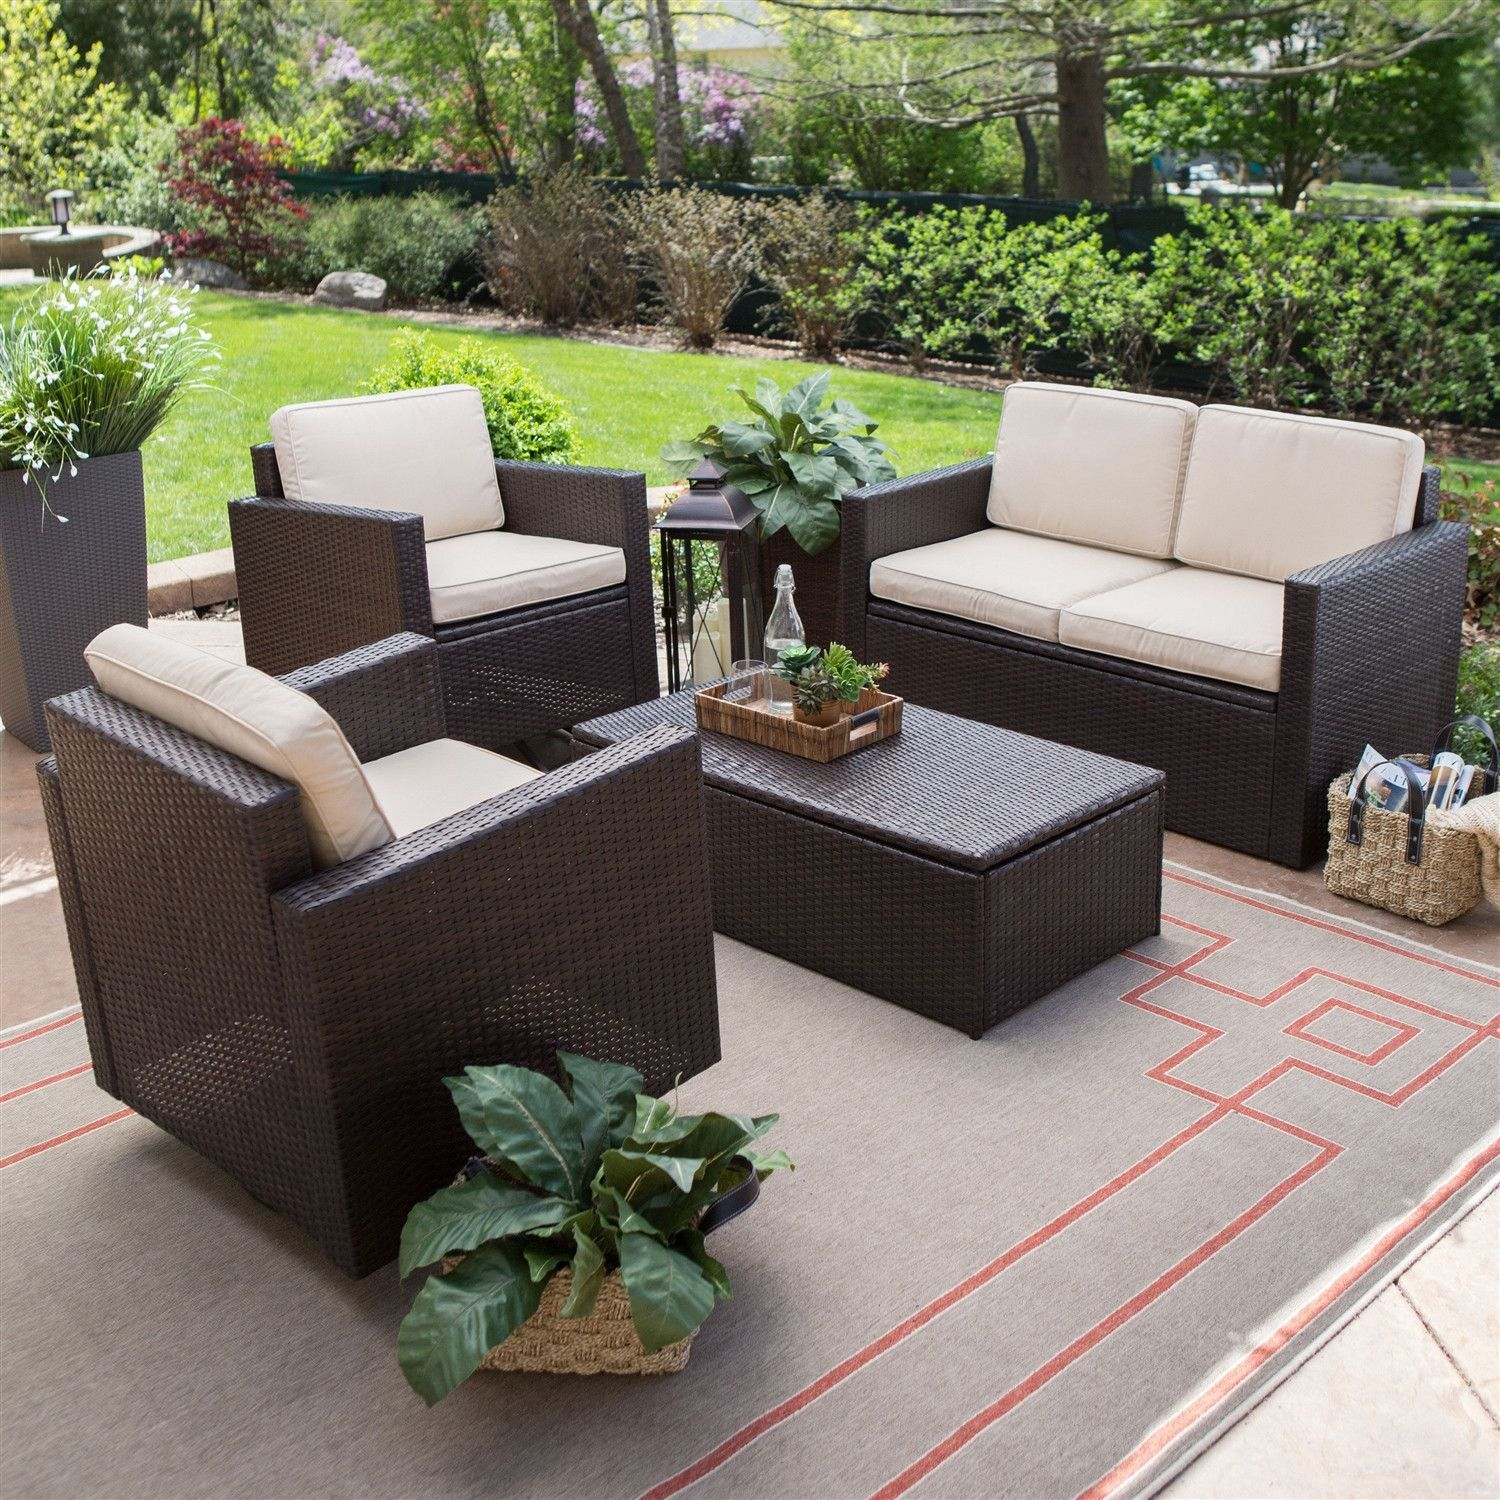 Garden Sofa And Table Sets Leather Bed San Francisco Outdoor Wicker Resin 4 Piece Patio Furniture Dinning Set